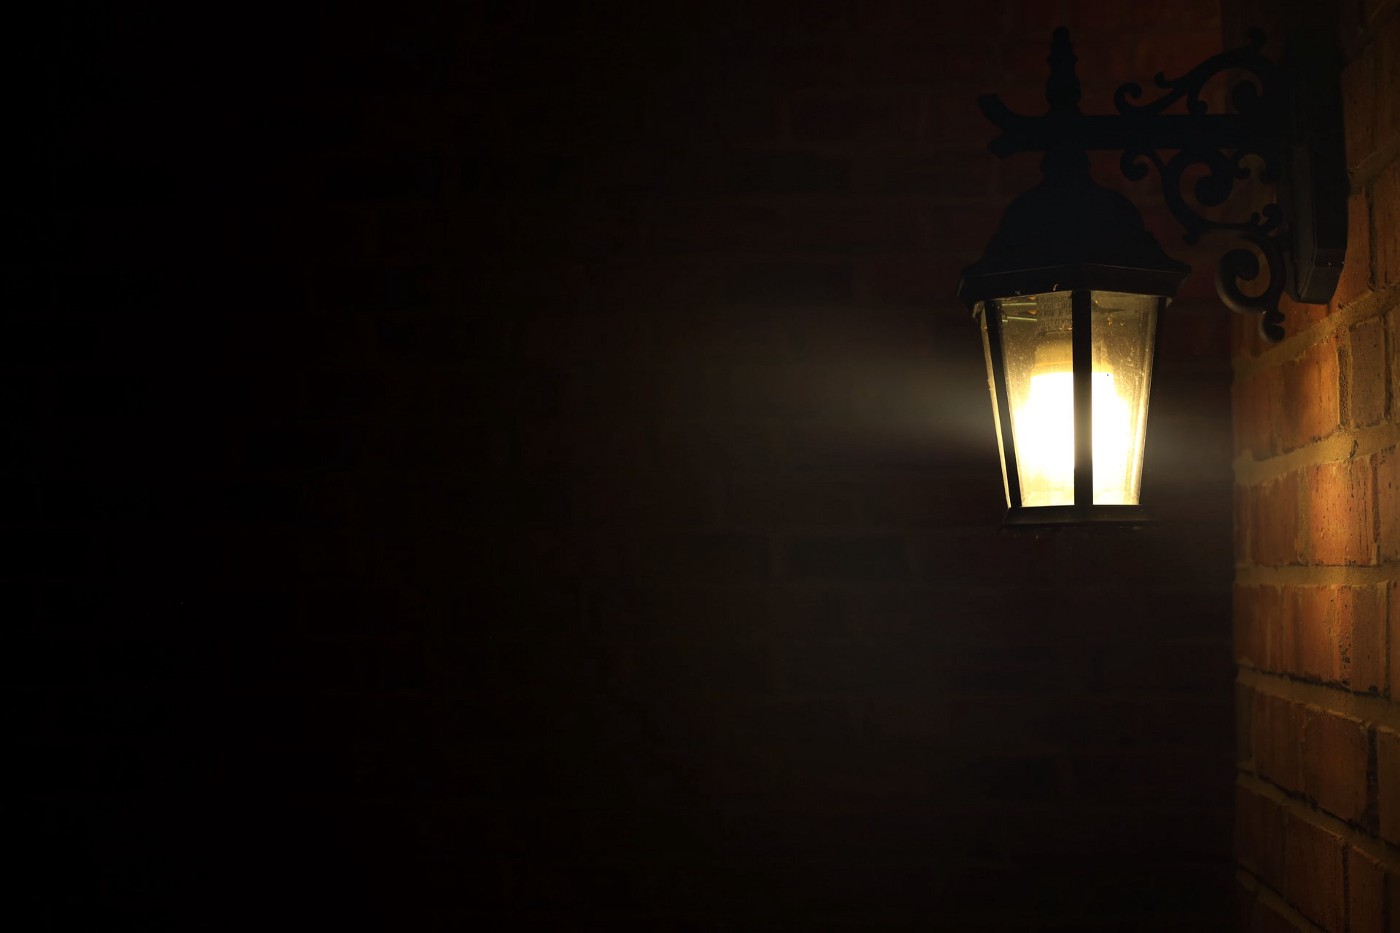 A lit porch light in a dark scene